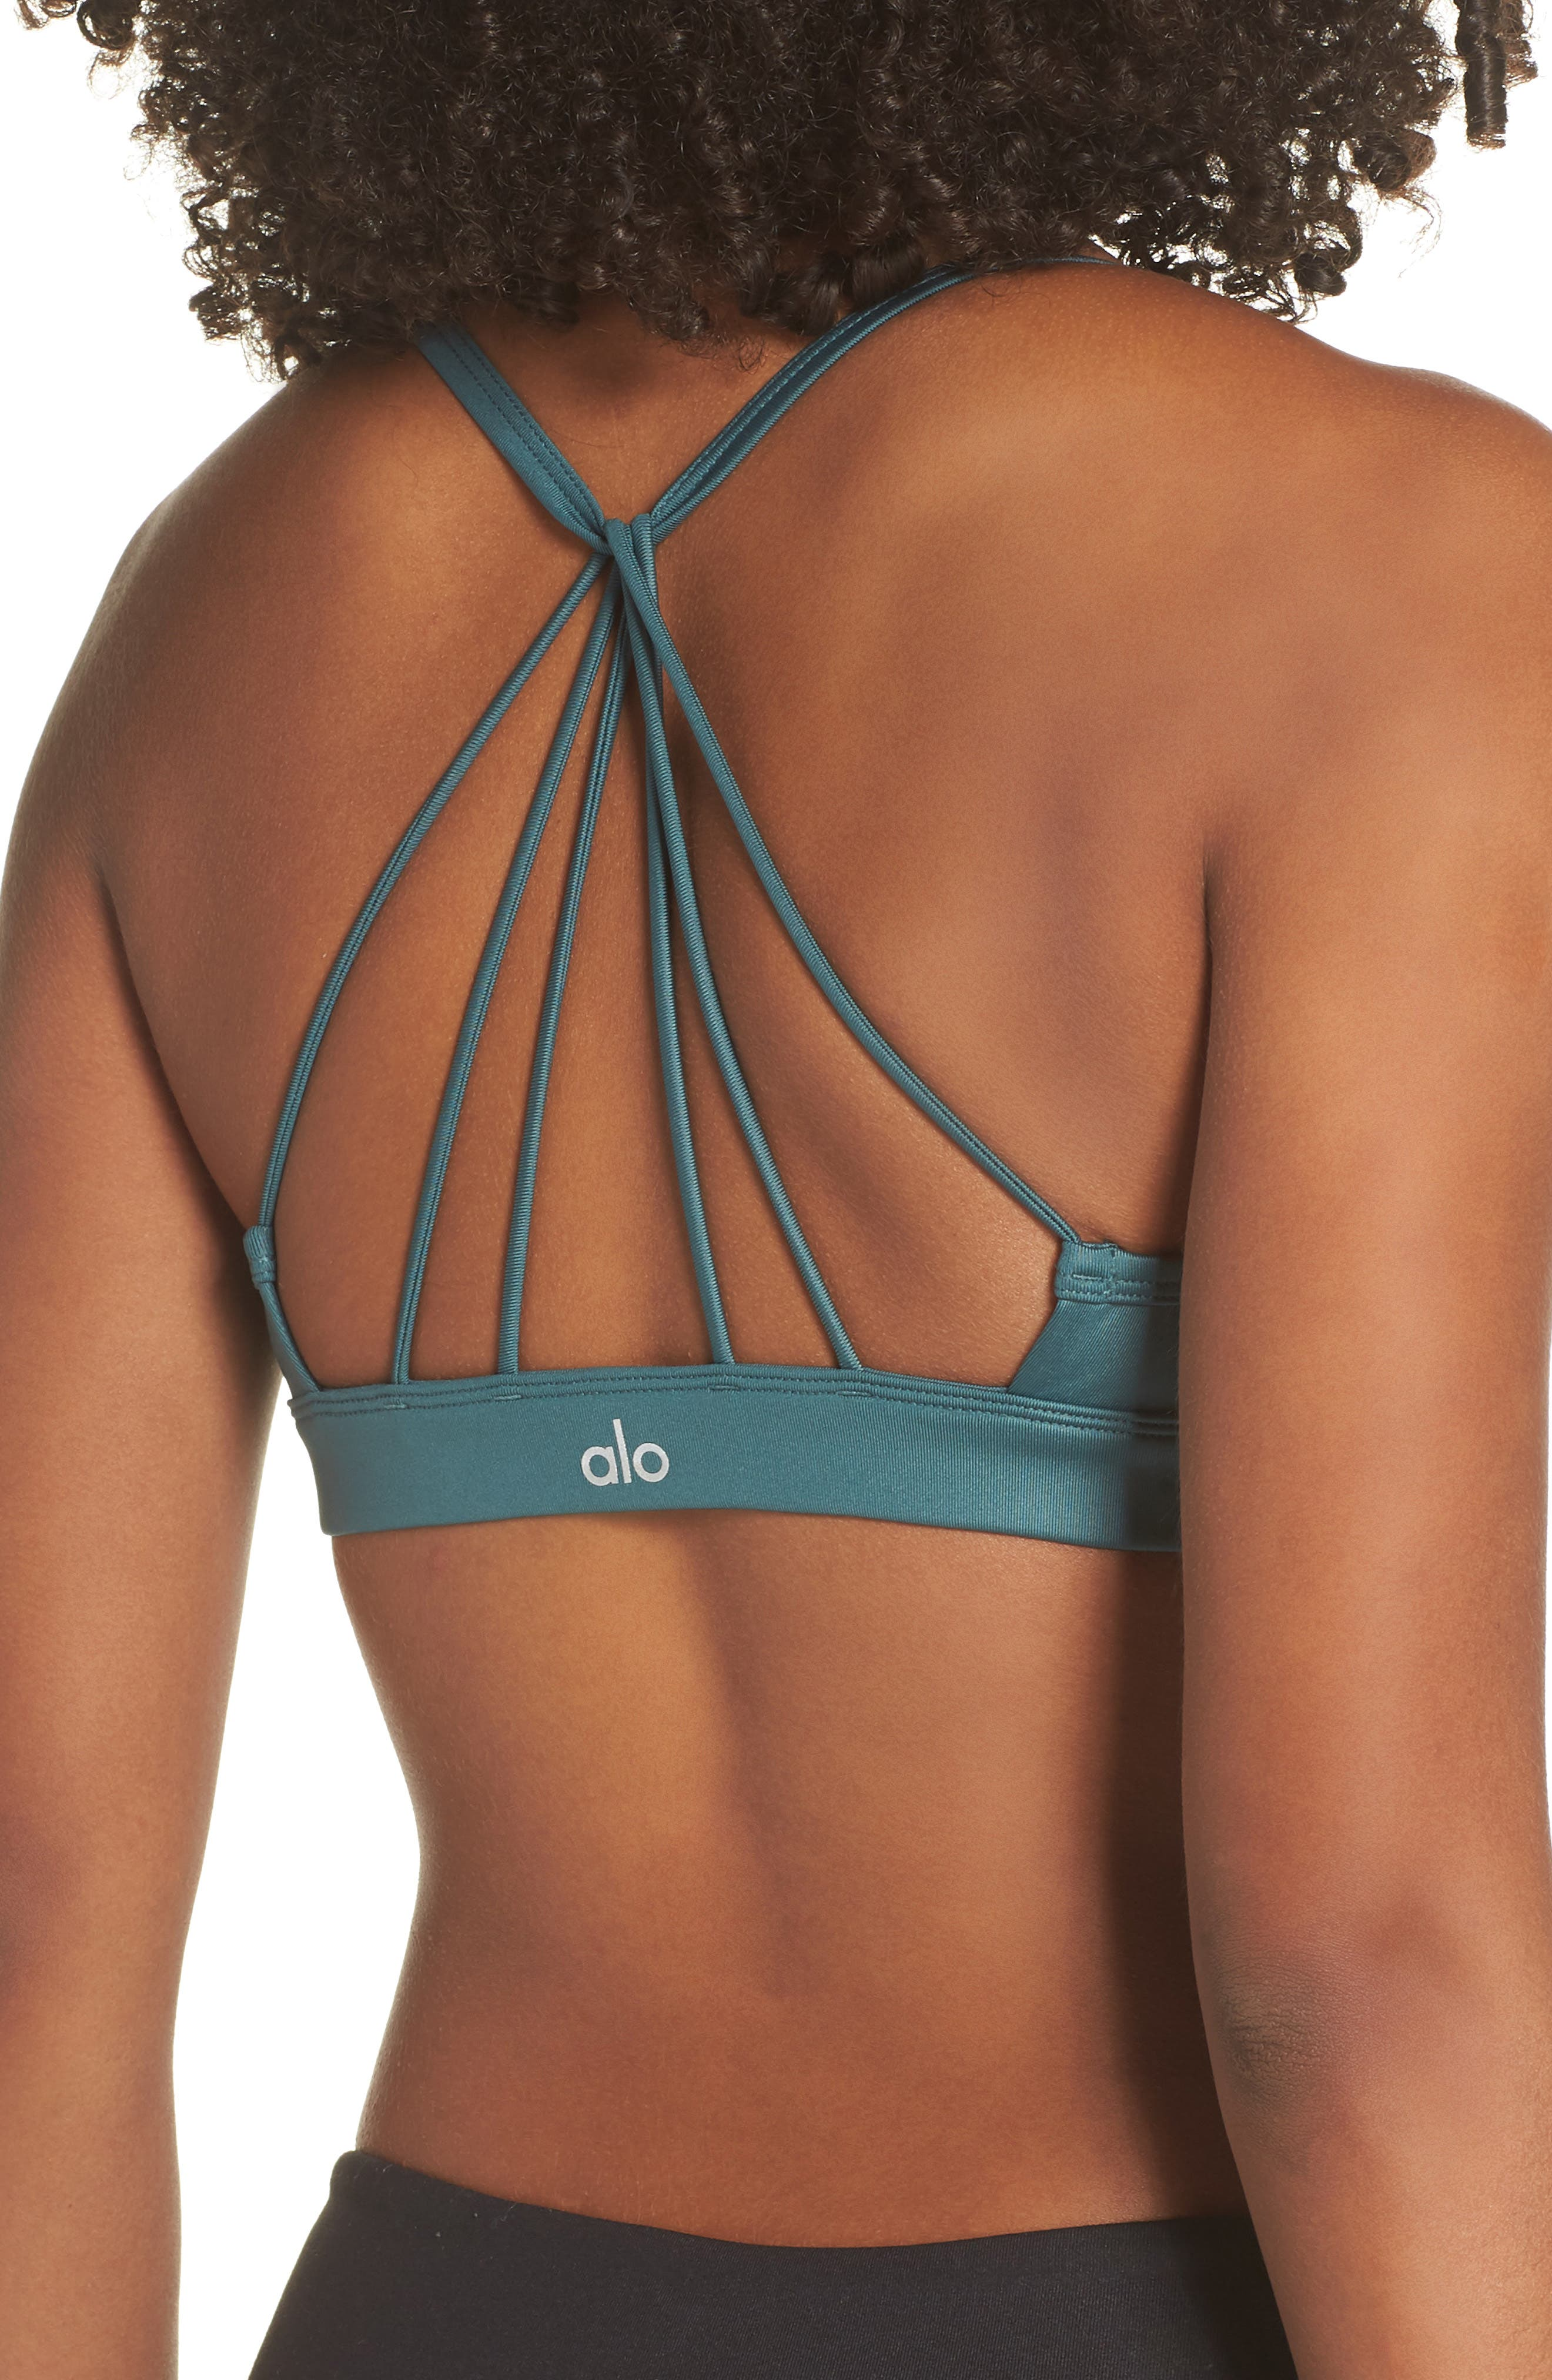 'Sunny Strappy' Soft Cup Bralette,                             Alternate thumbnail 2, color,                             442